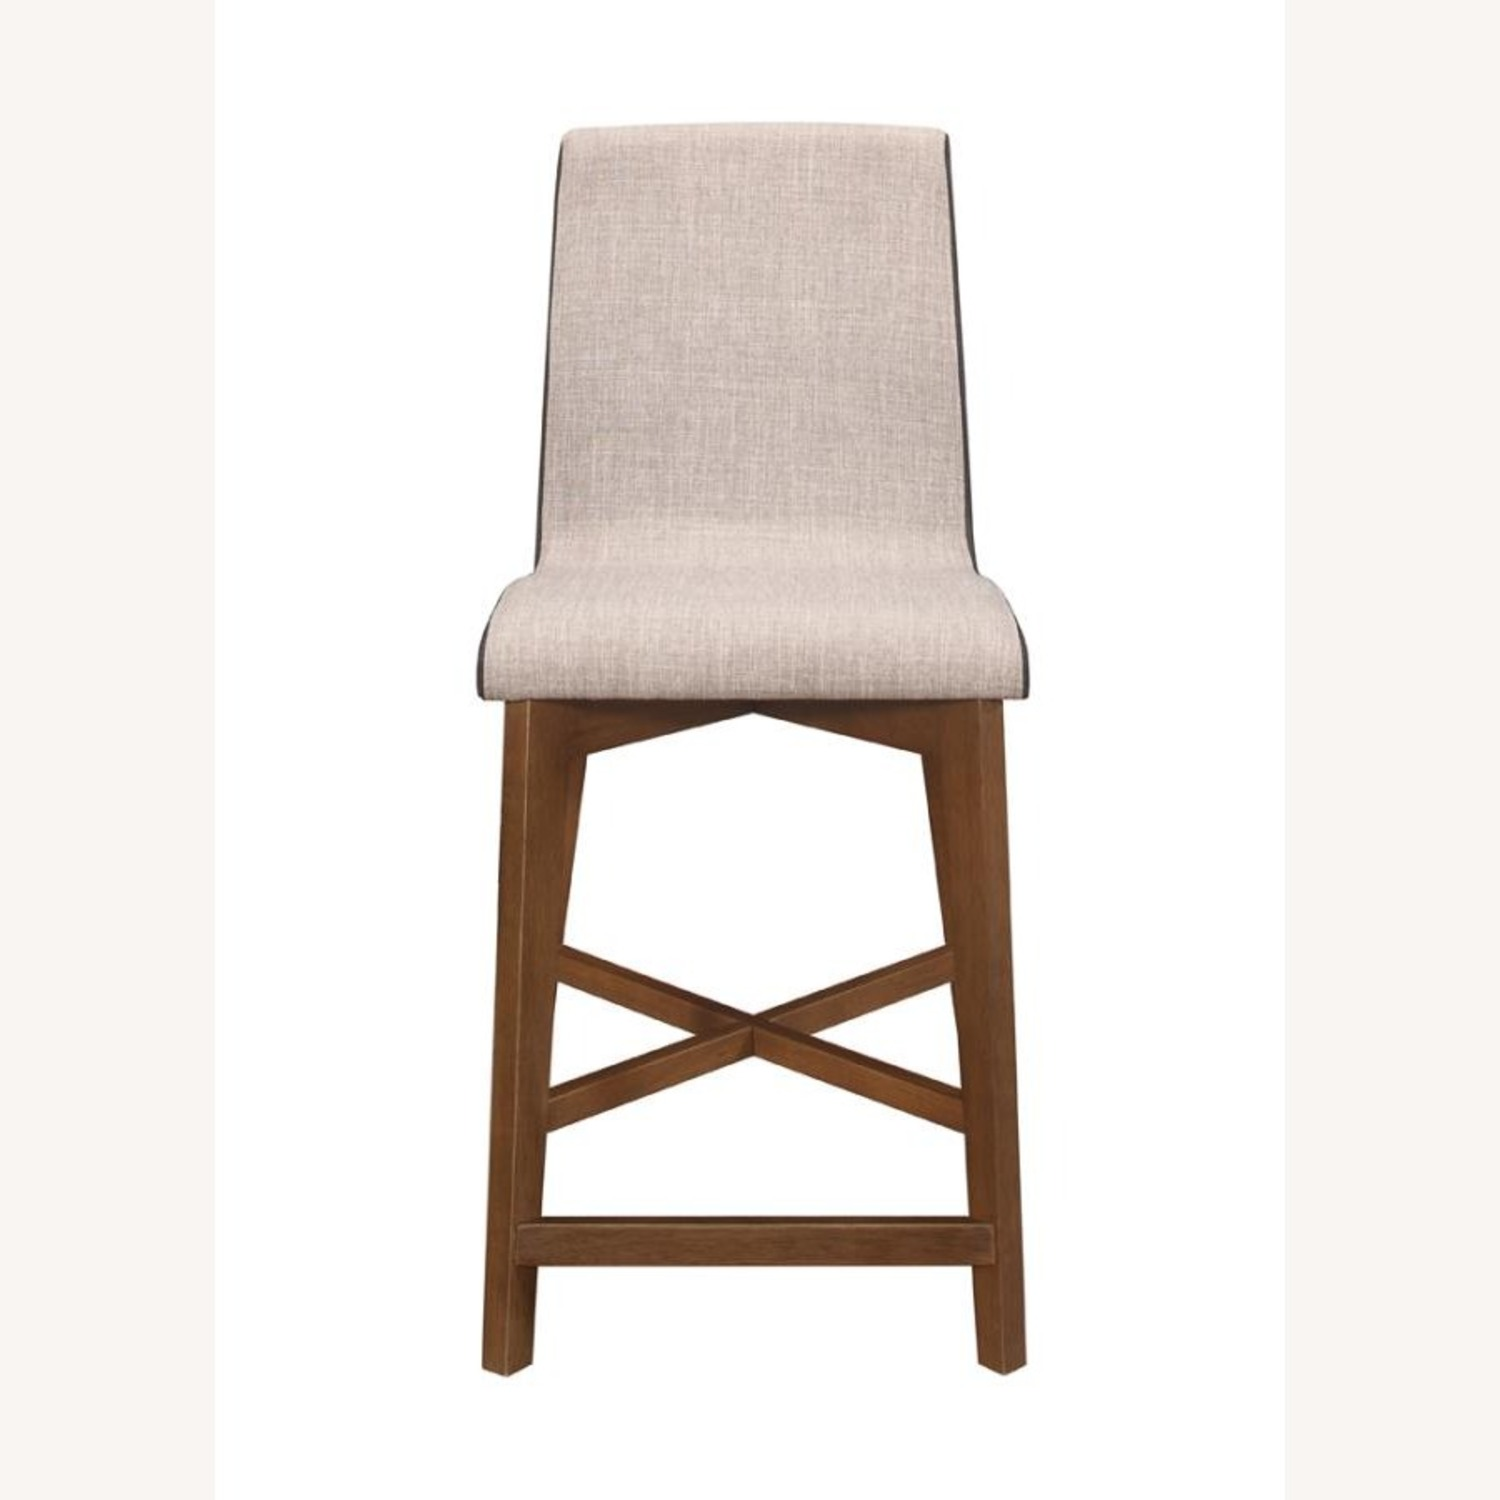 Counter Height Stool In 2-Tone Grey Fabric Finish - image-1